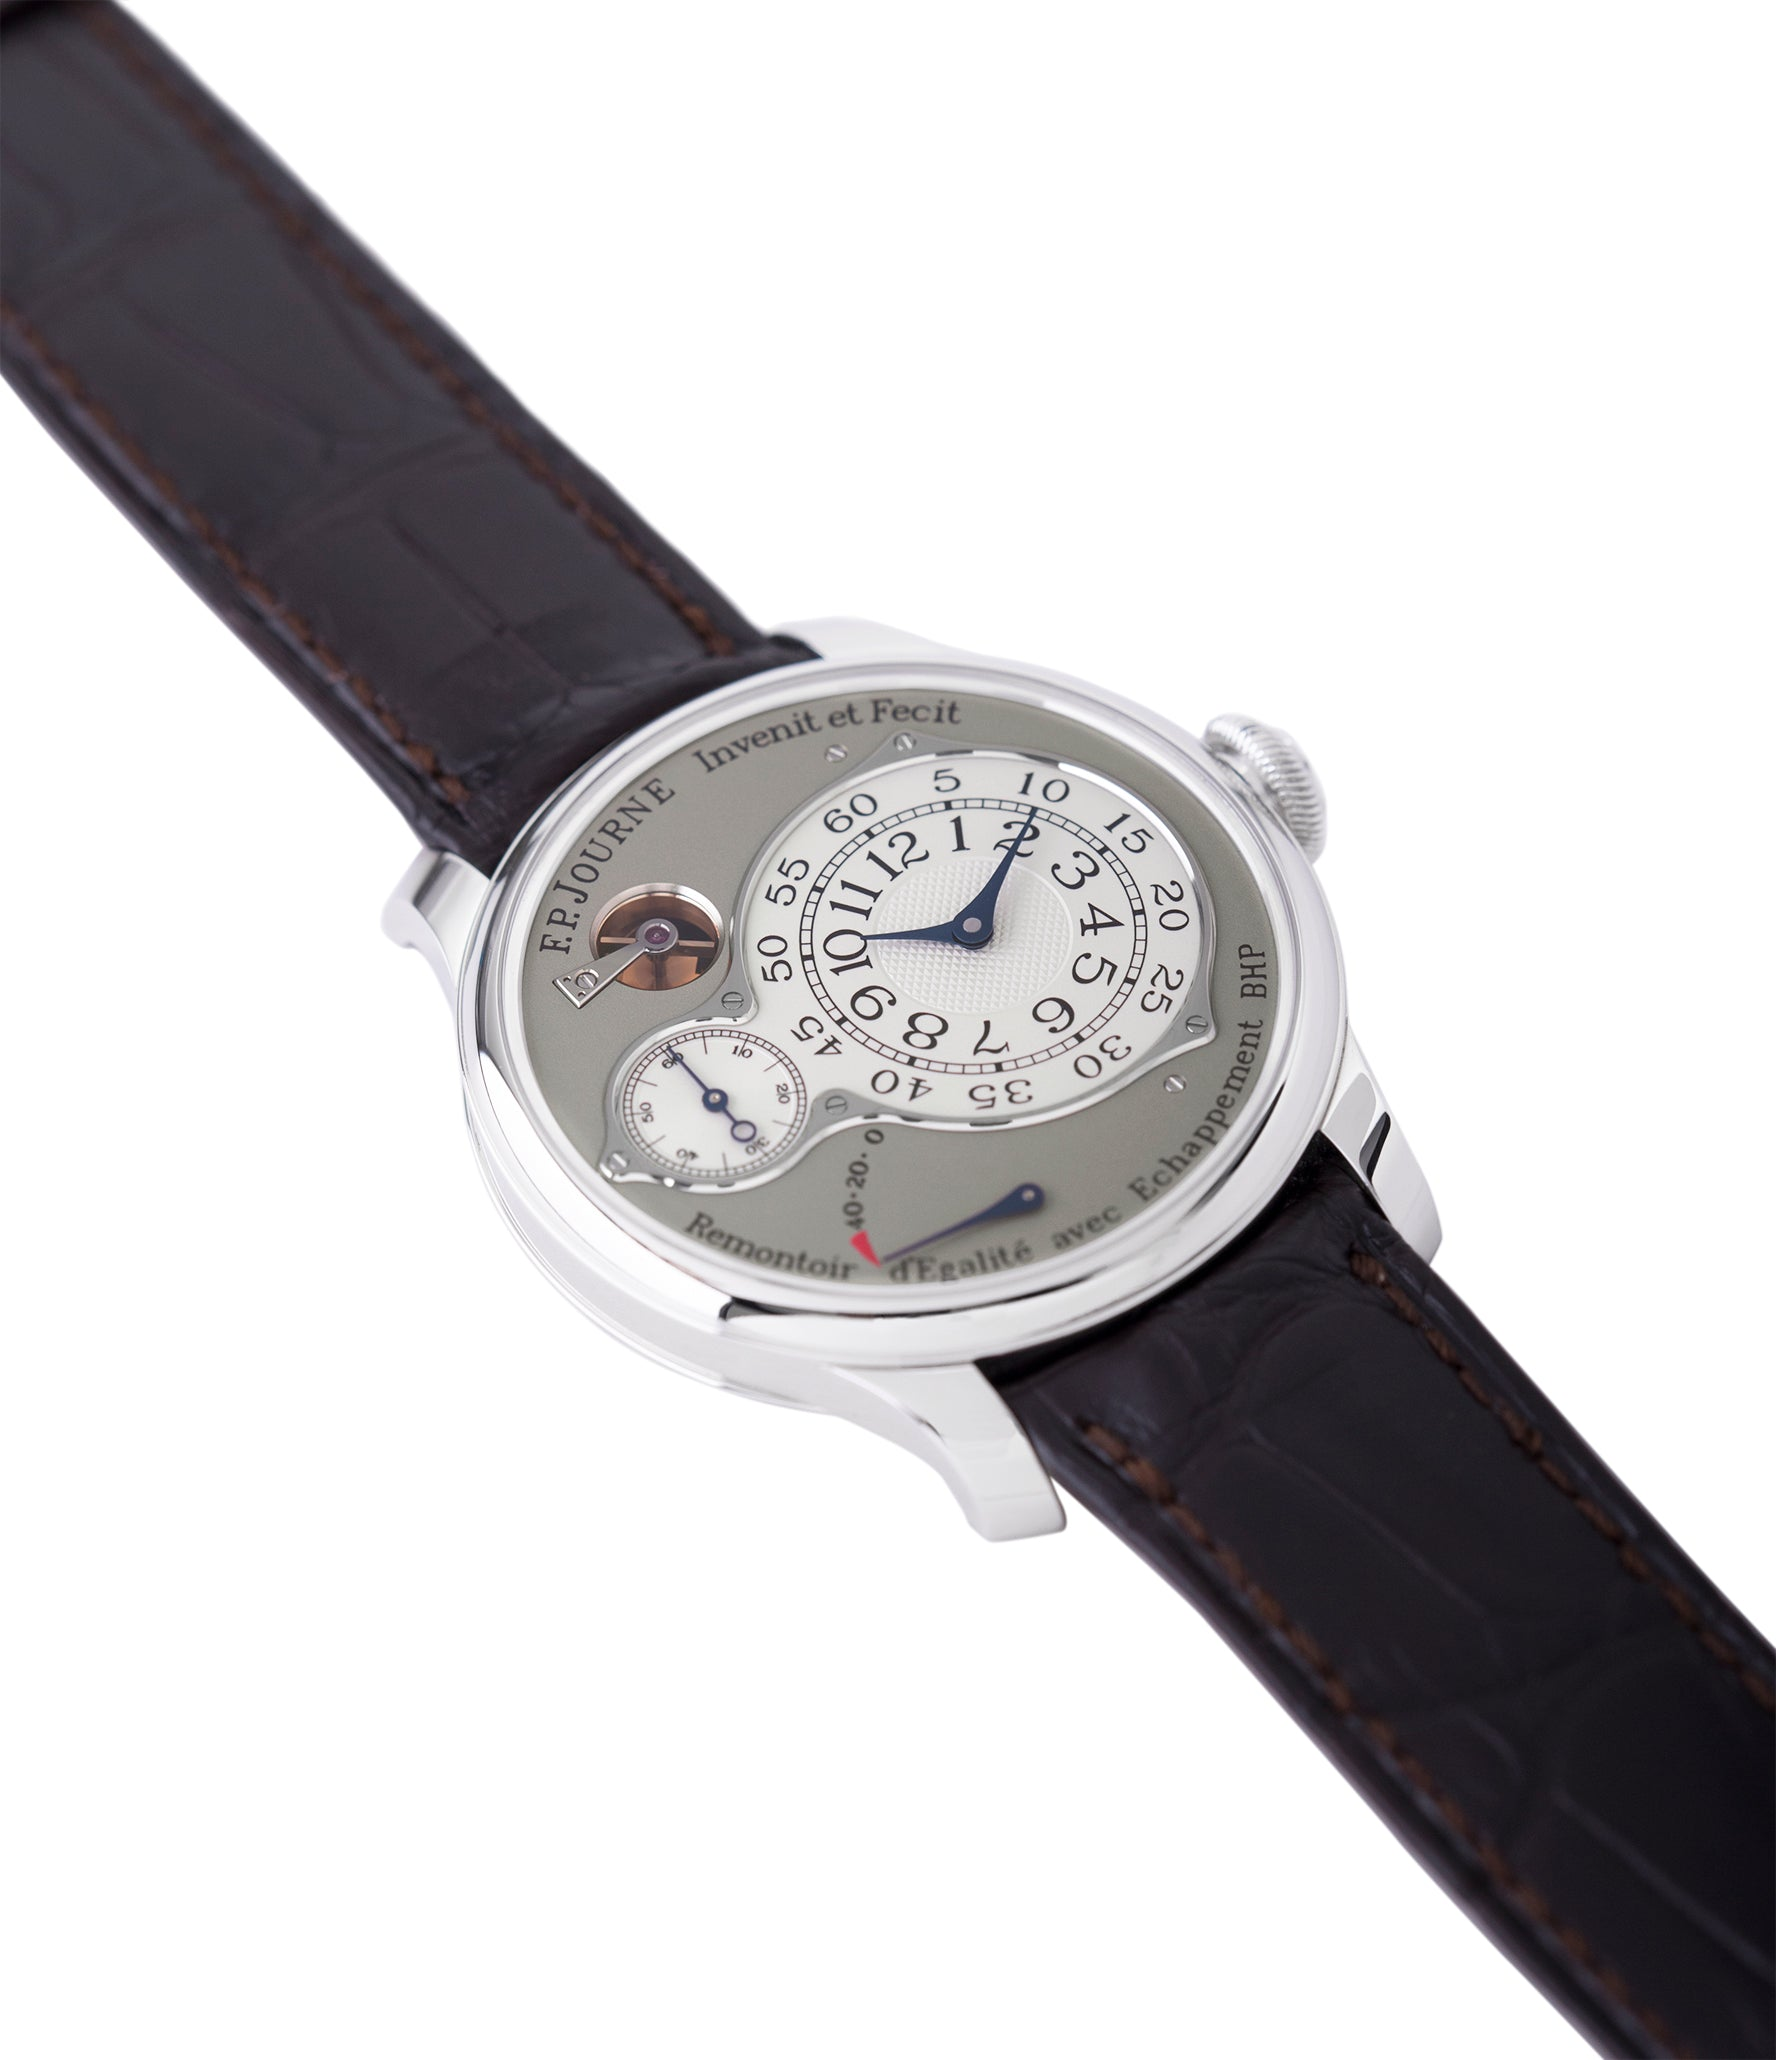 buy preowned F. P. Journe Chronometre Optimum platinum rare watch for sale online at A Collected Man London approved retailer of independent watchmakers